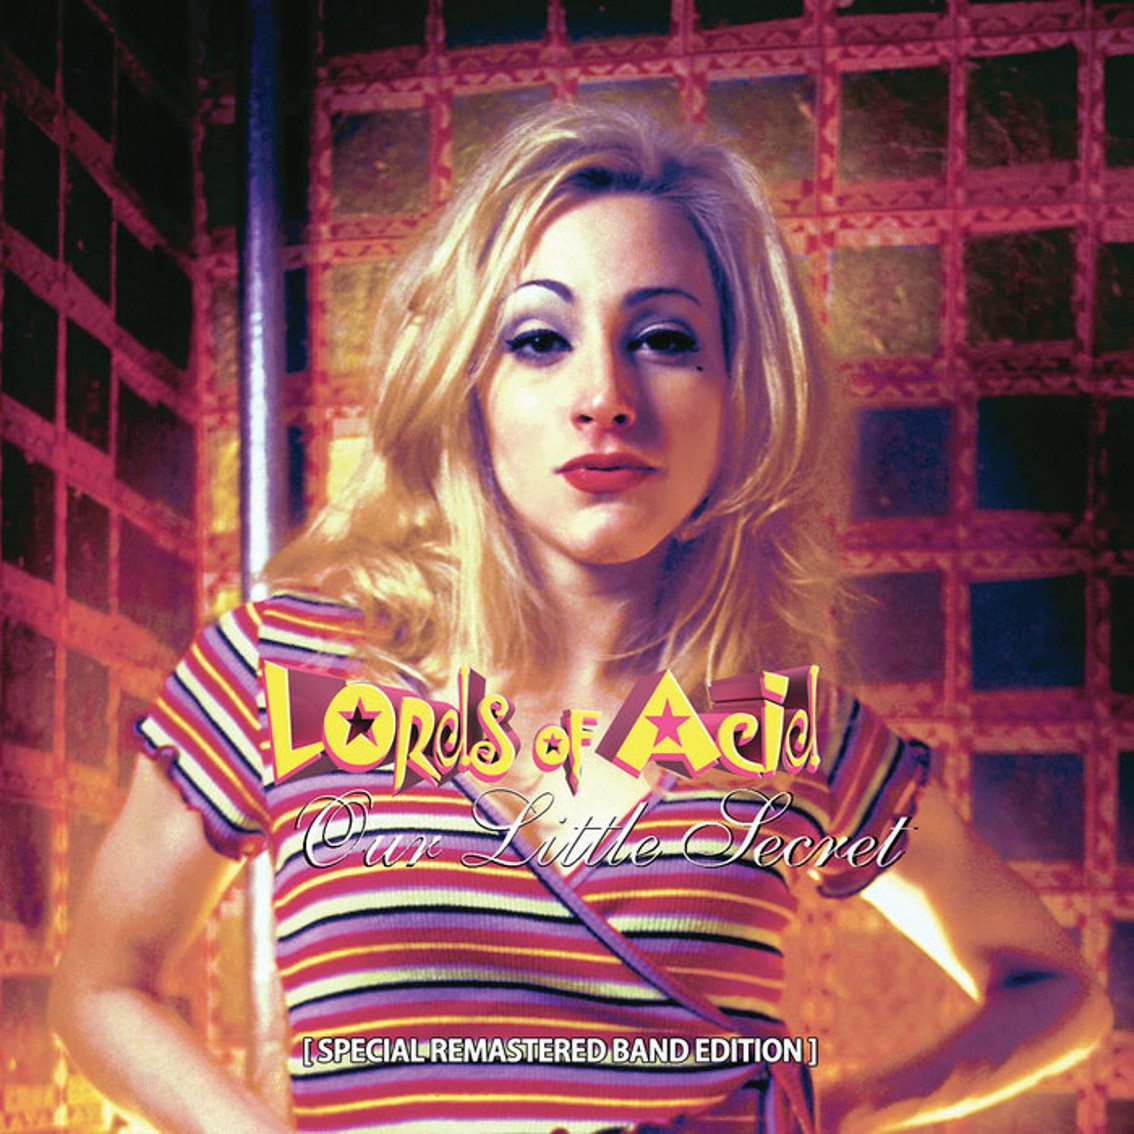 2 new Lords Of Acid reissues:'Our little secret' and'Farstucker' - special remastered band editions also available on double vinyl